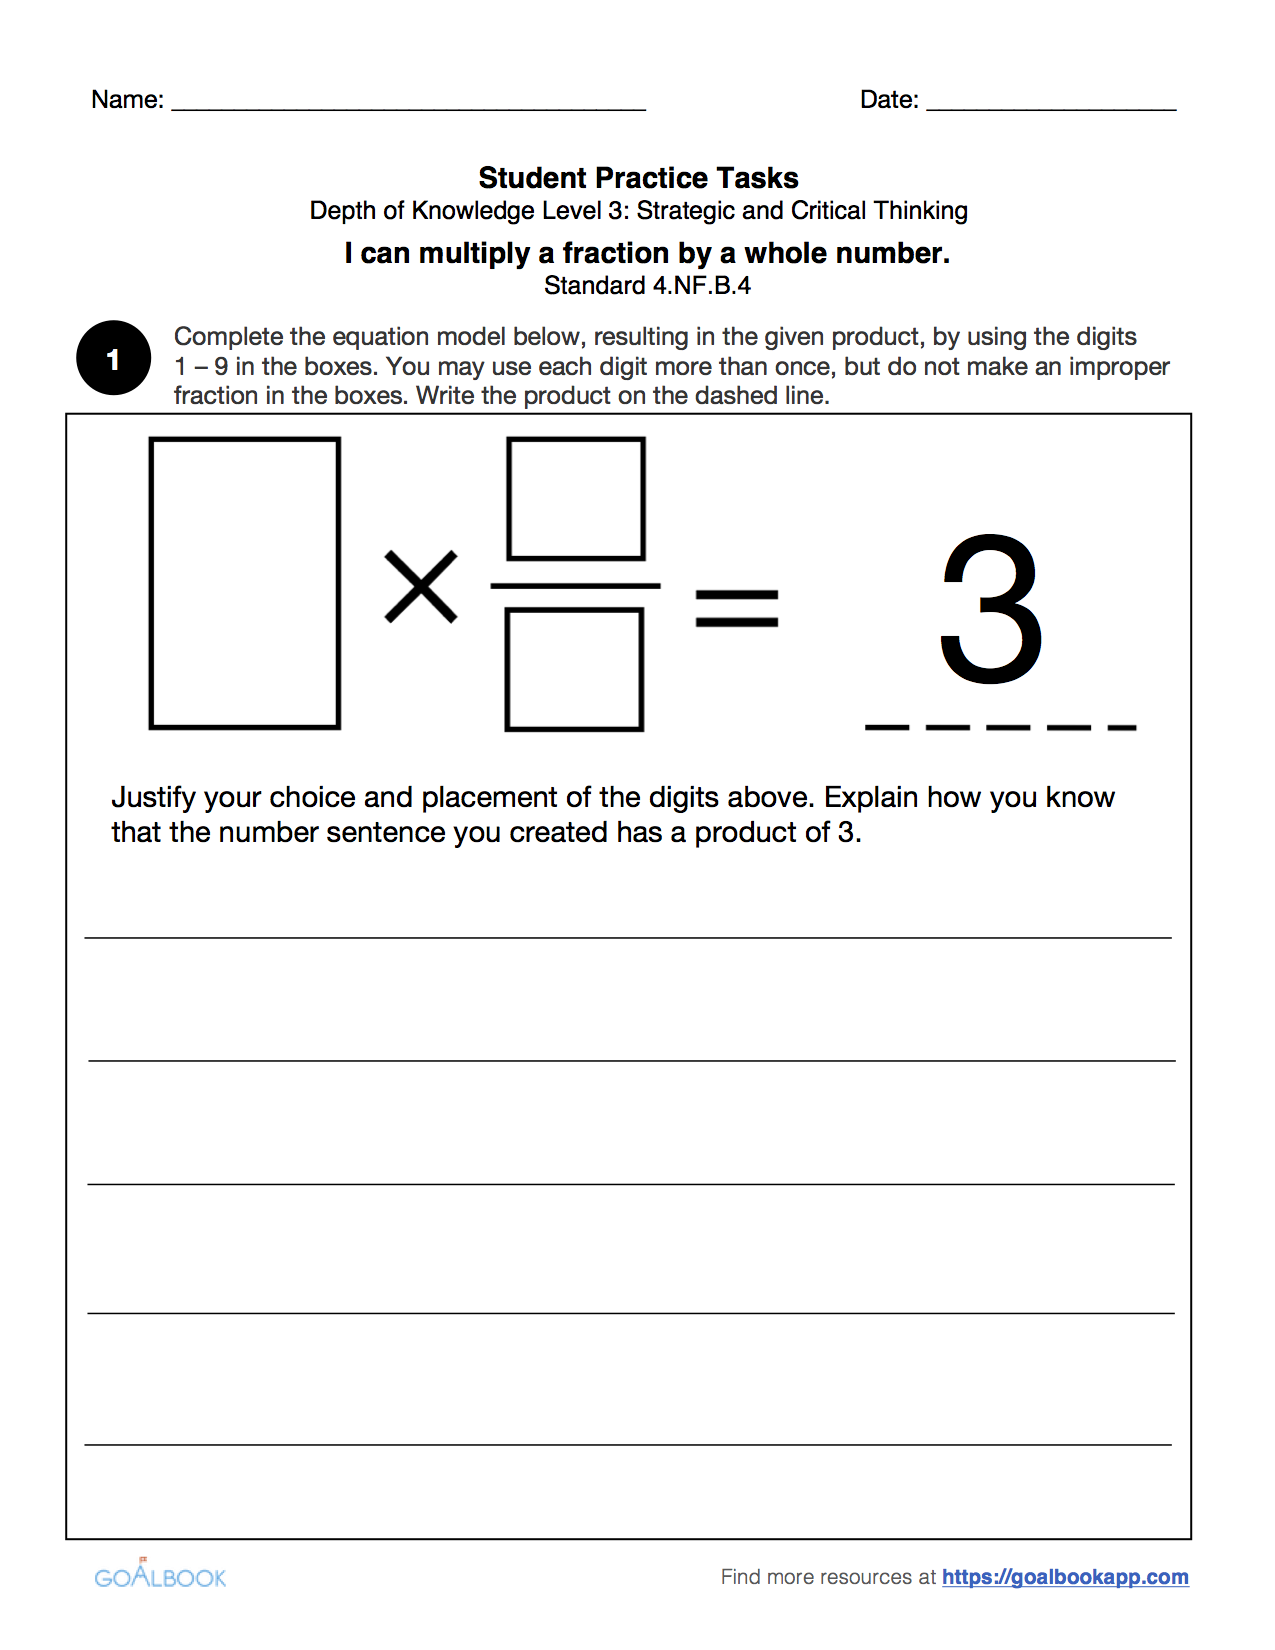 worksheet Multiply Fractions By Whole Numbers Worksheet 4 nf multiply a fraction by whole number math operations fractions 4th grade goalbook pathways